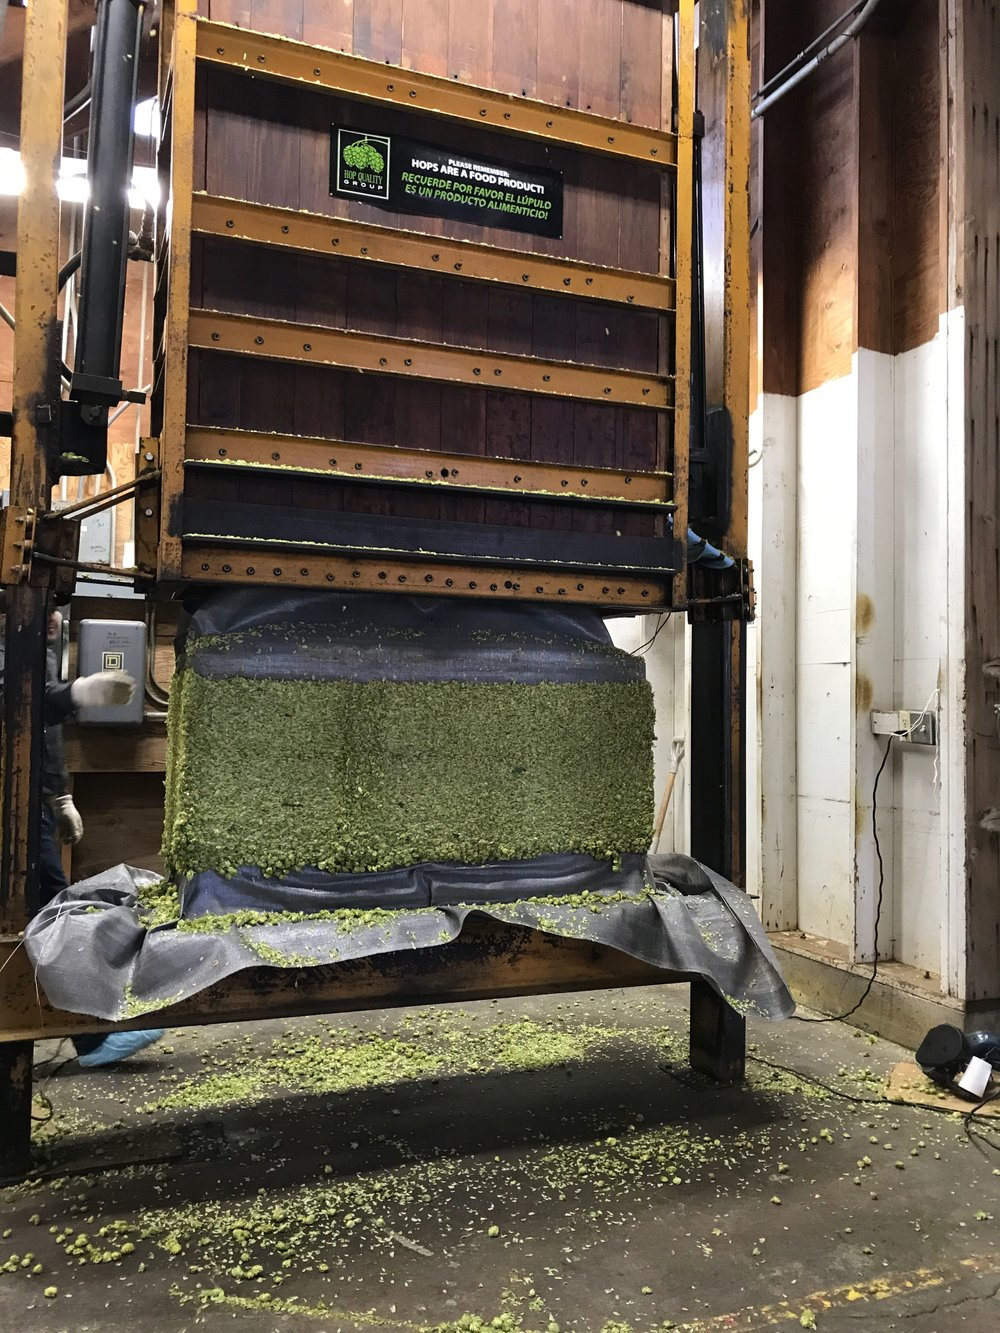 Hops getting compacted into 200 pound bales. Then formed into a bag.